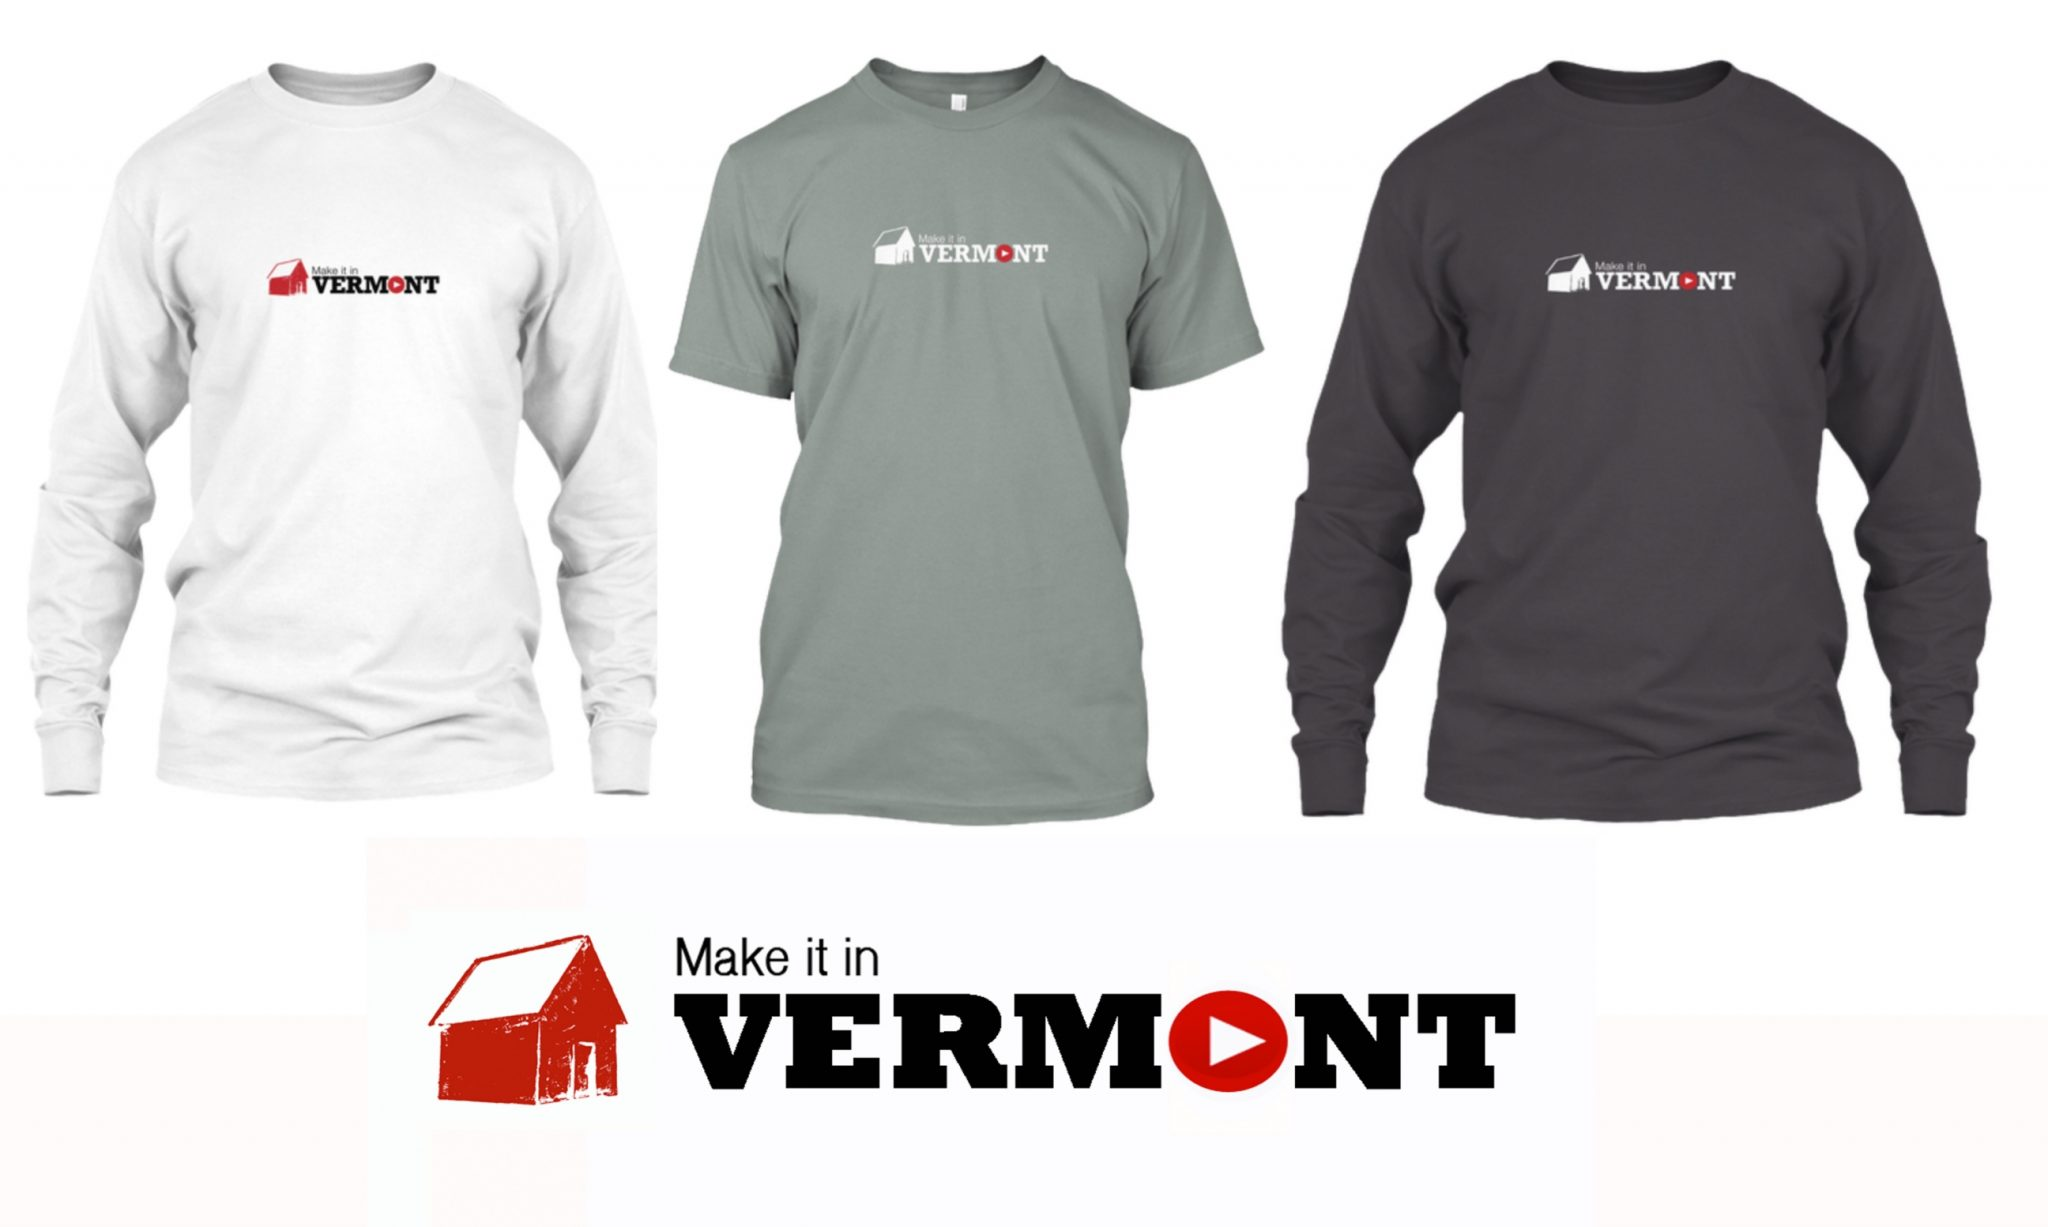 Make It In Vermont